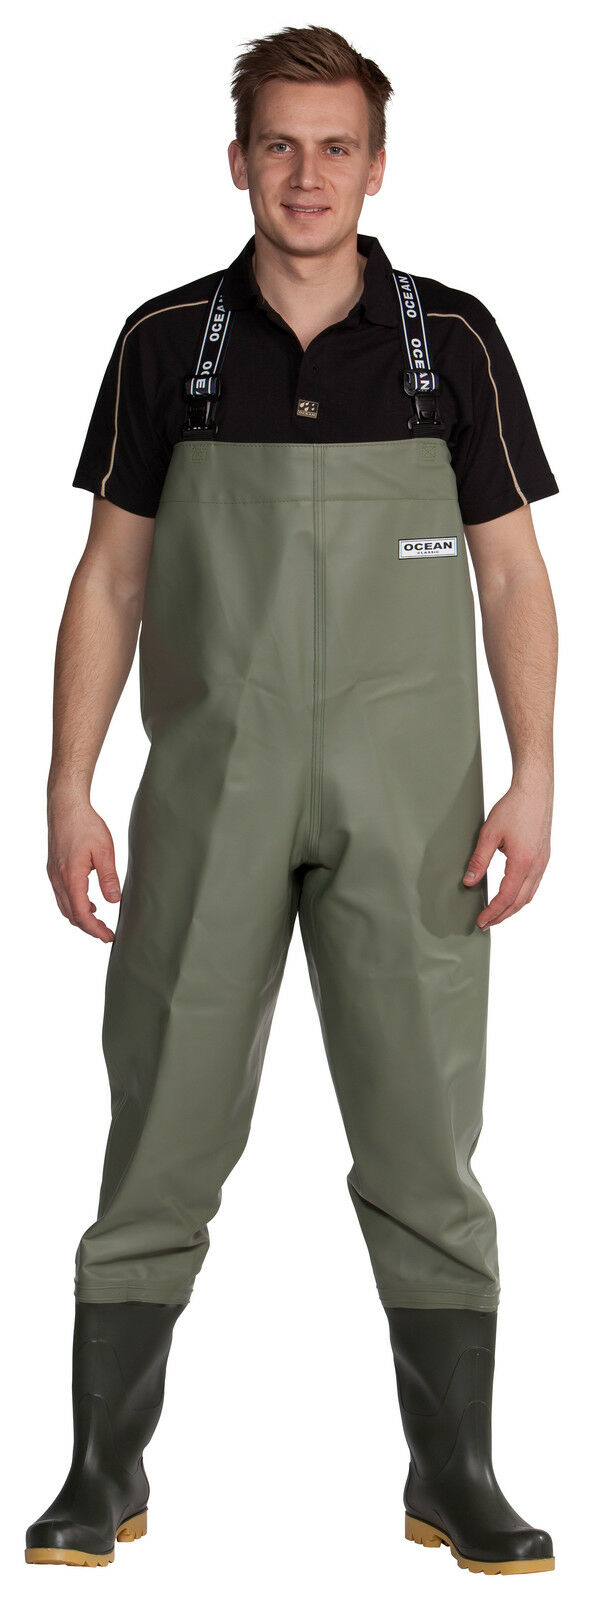 Ocean Classic Chest Waders Wide Wide Wide +22cm 600g PVC / 2-73 Fishing Chestwaders 3e5dd0